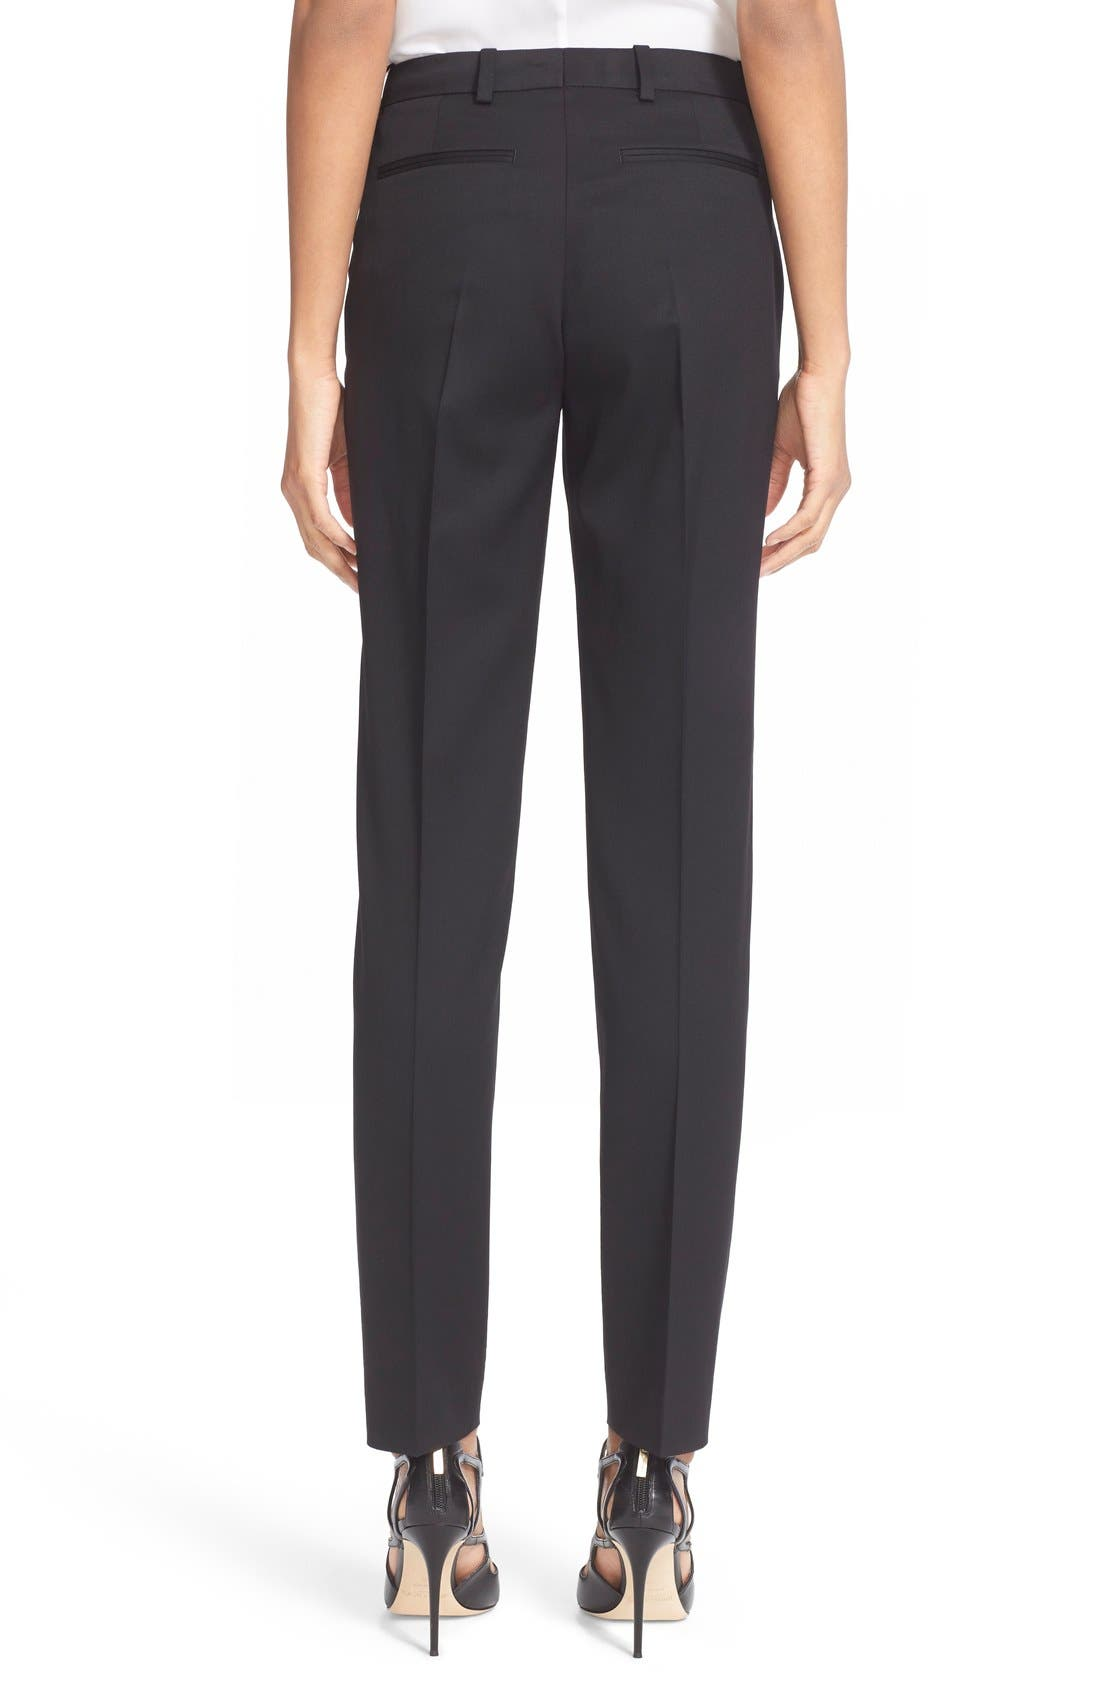 'Timeless' Stretch Wool Trousers,                             Alternate thumbnail 3, color,                             Black